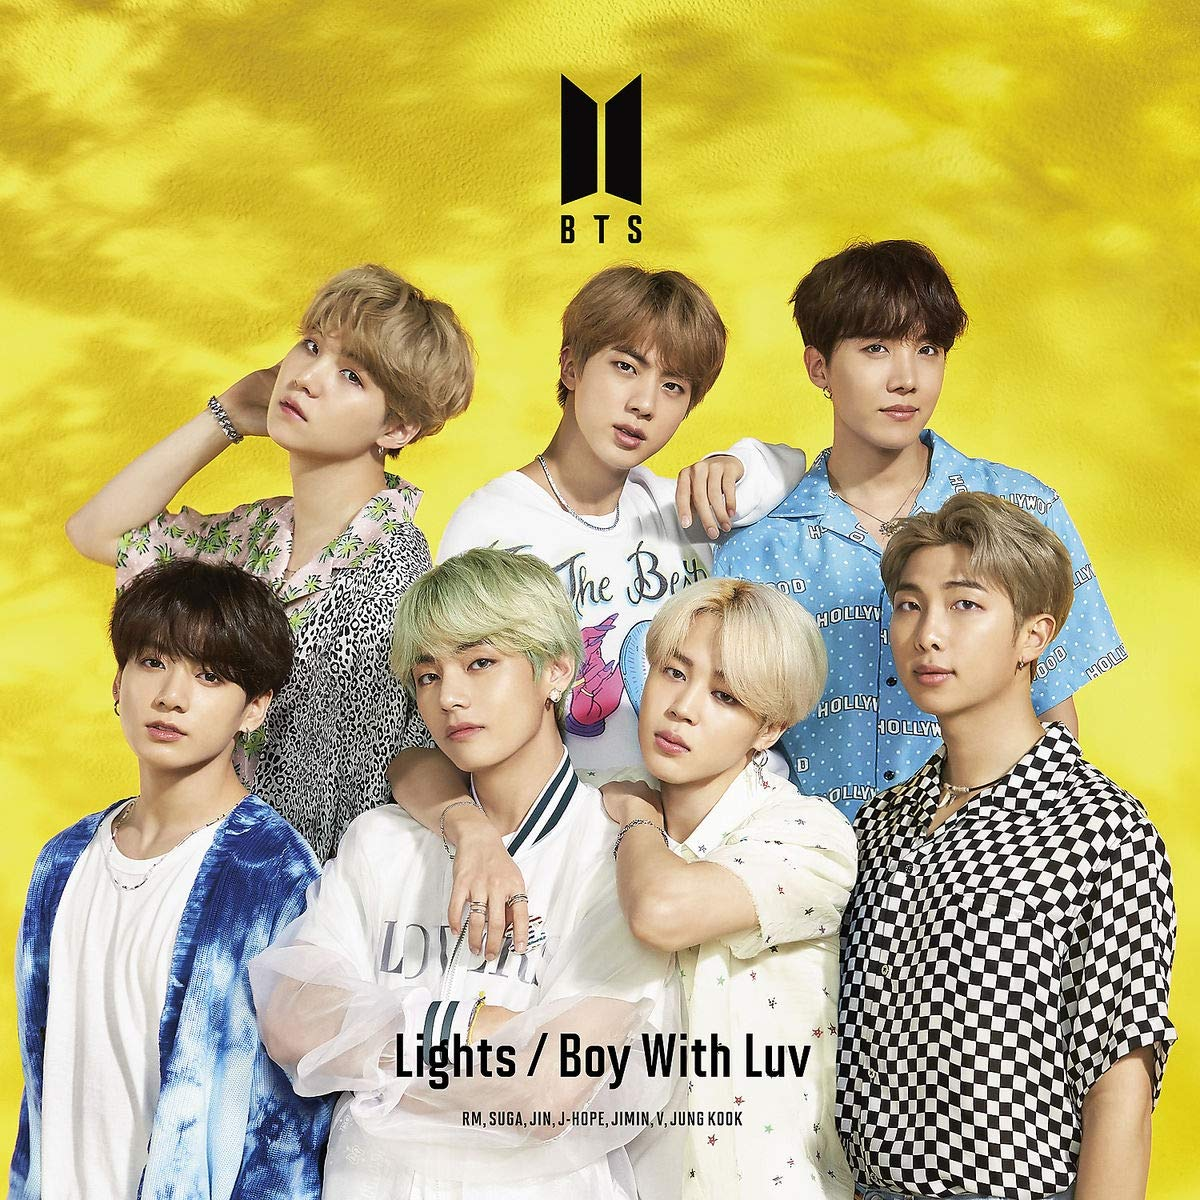 CD Shop - BTS LIGHTS / BOY WITH LUV